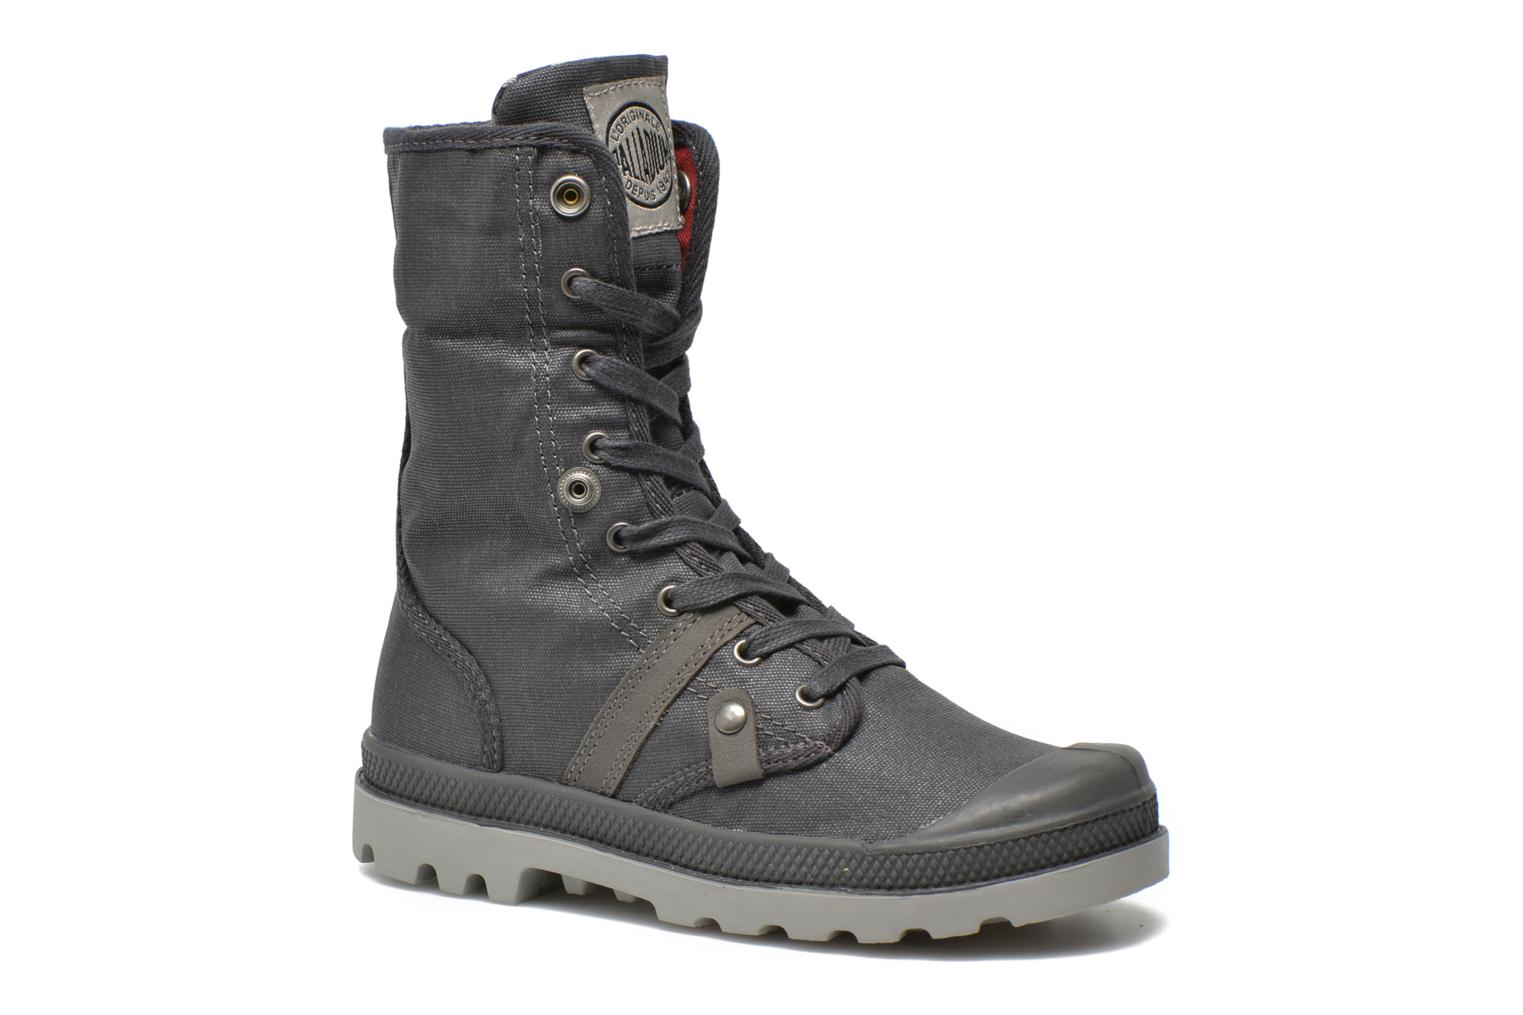 Bottines et boots Palladium Baggy Wax K Gris vue 3/4